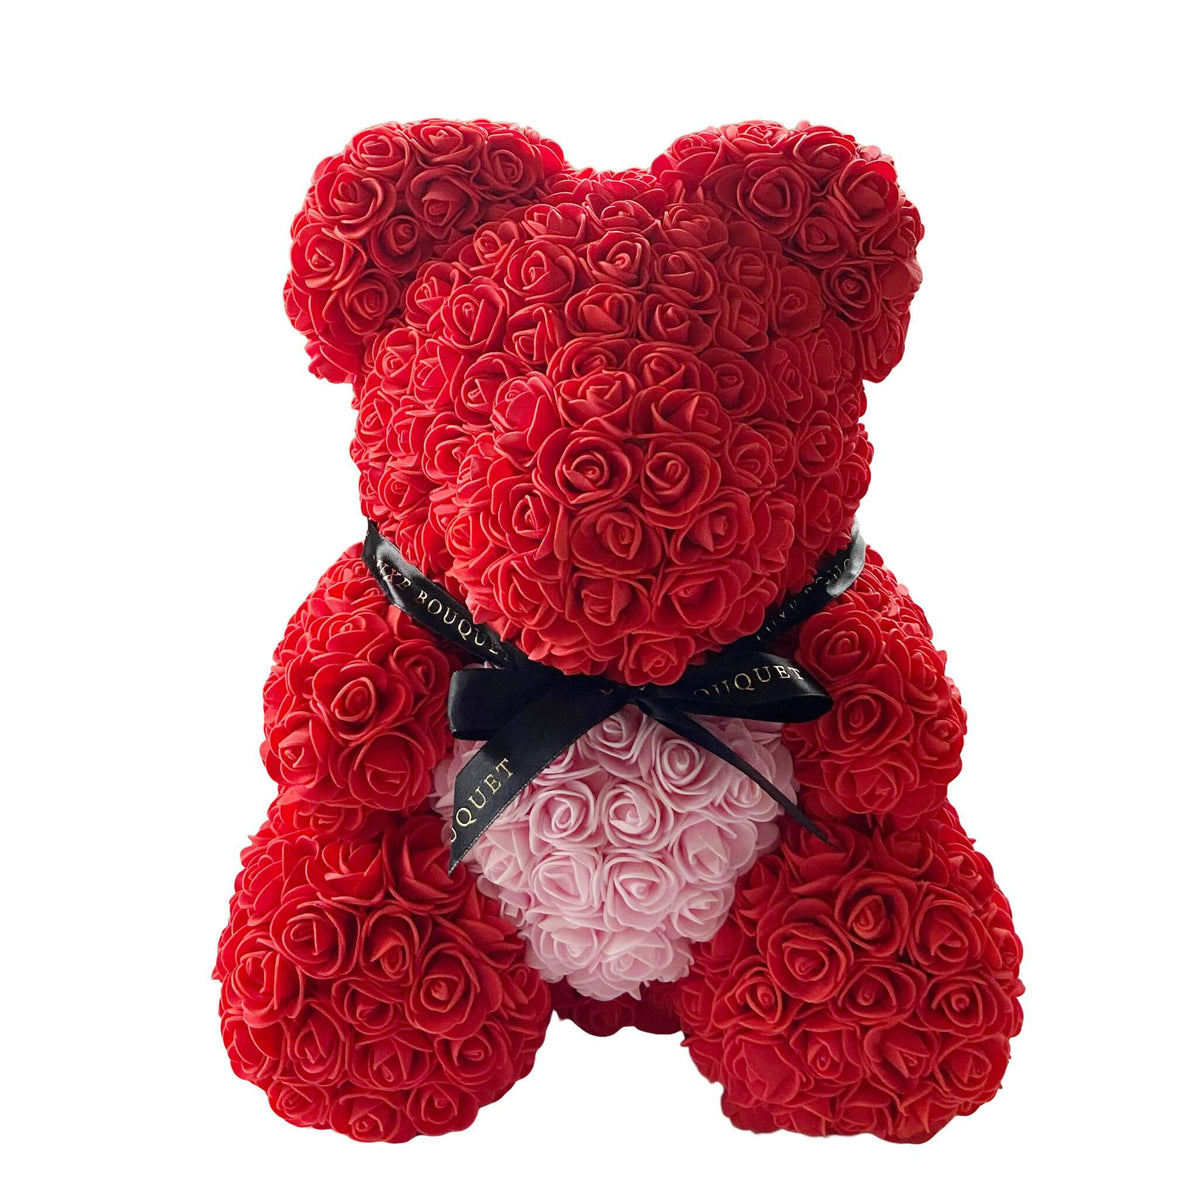 Red Luxe Rose Bear (Pink Heart) - 40cm - PRE-ORDER 14/09/2020 - Luxe Bouquet